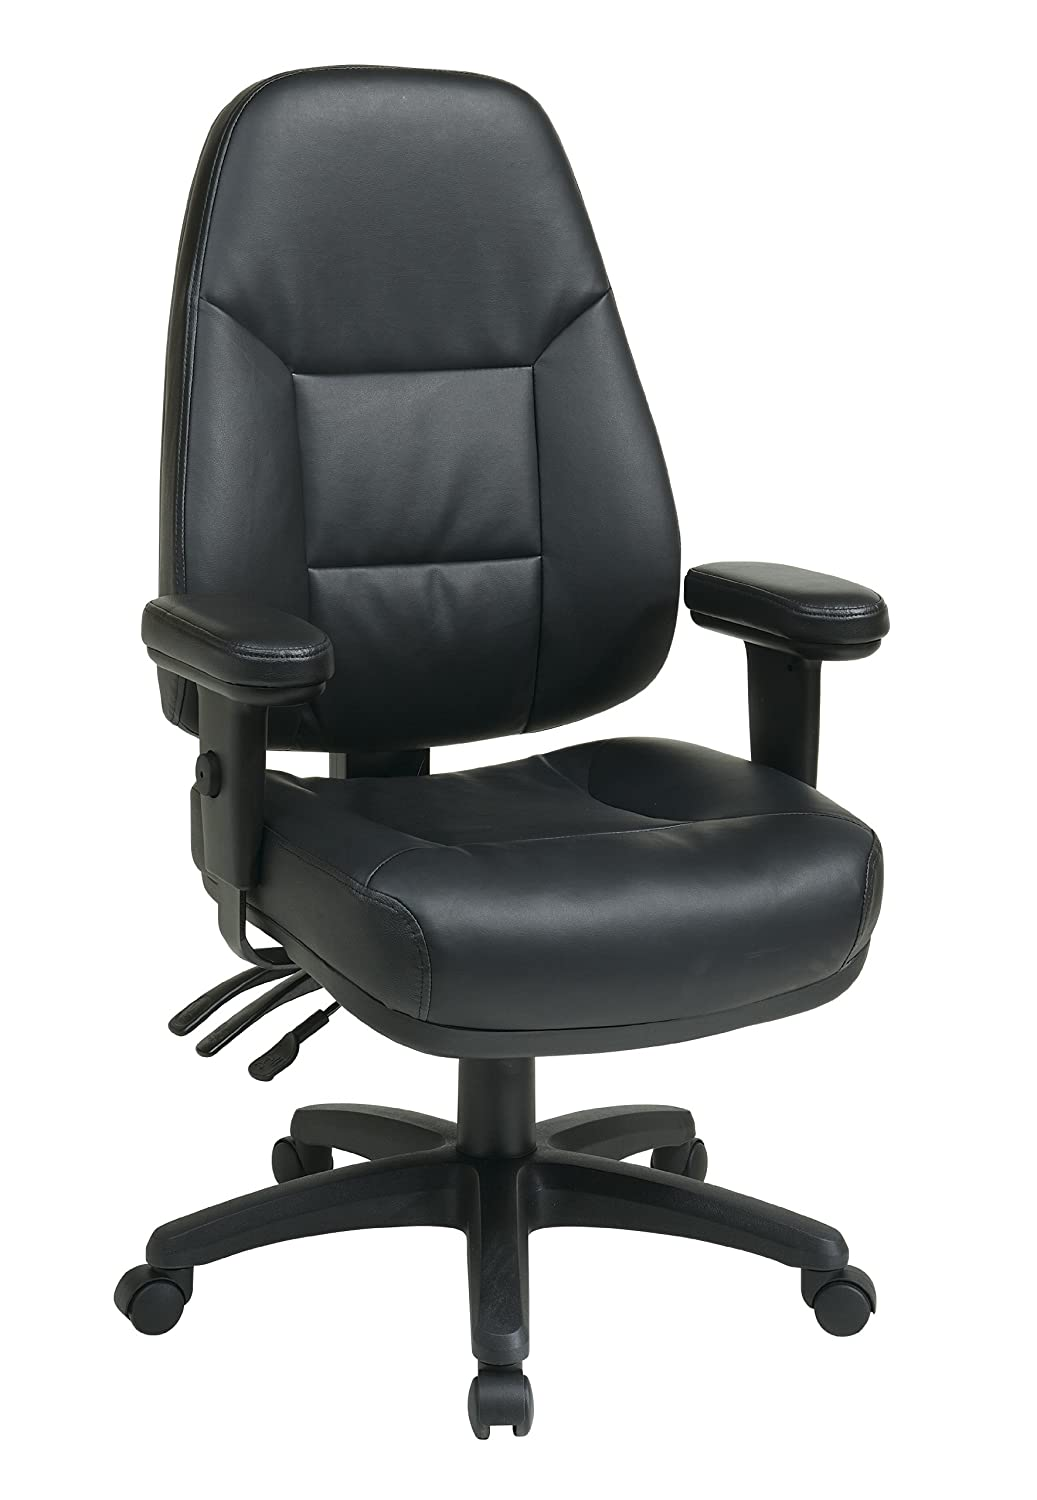 Comfortable Office Chairs Office Star Executive Chairs Reviewed Office Chairs For